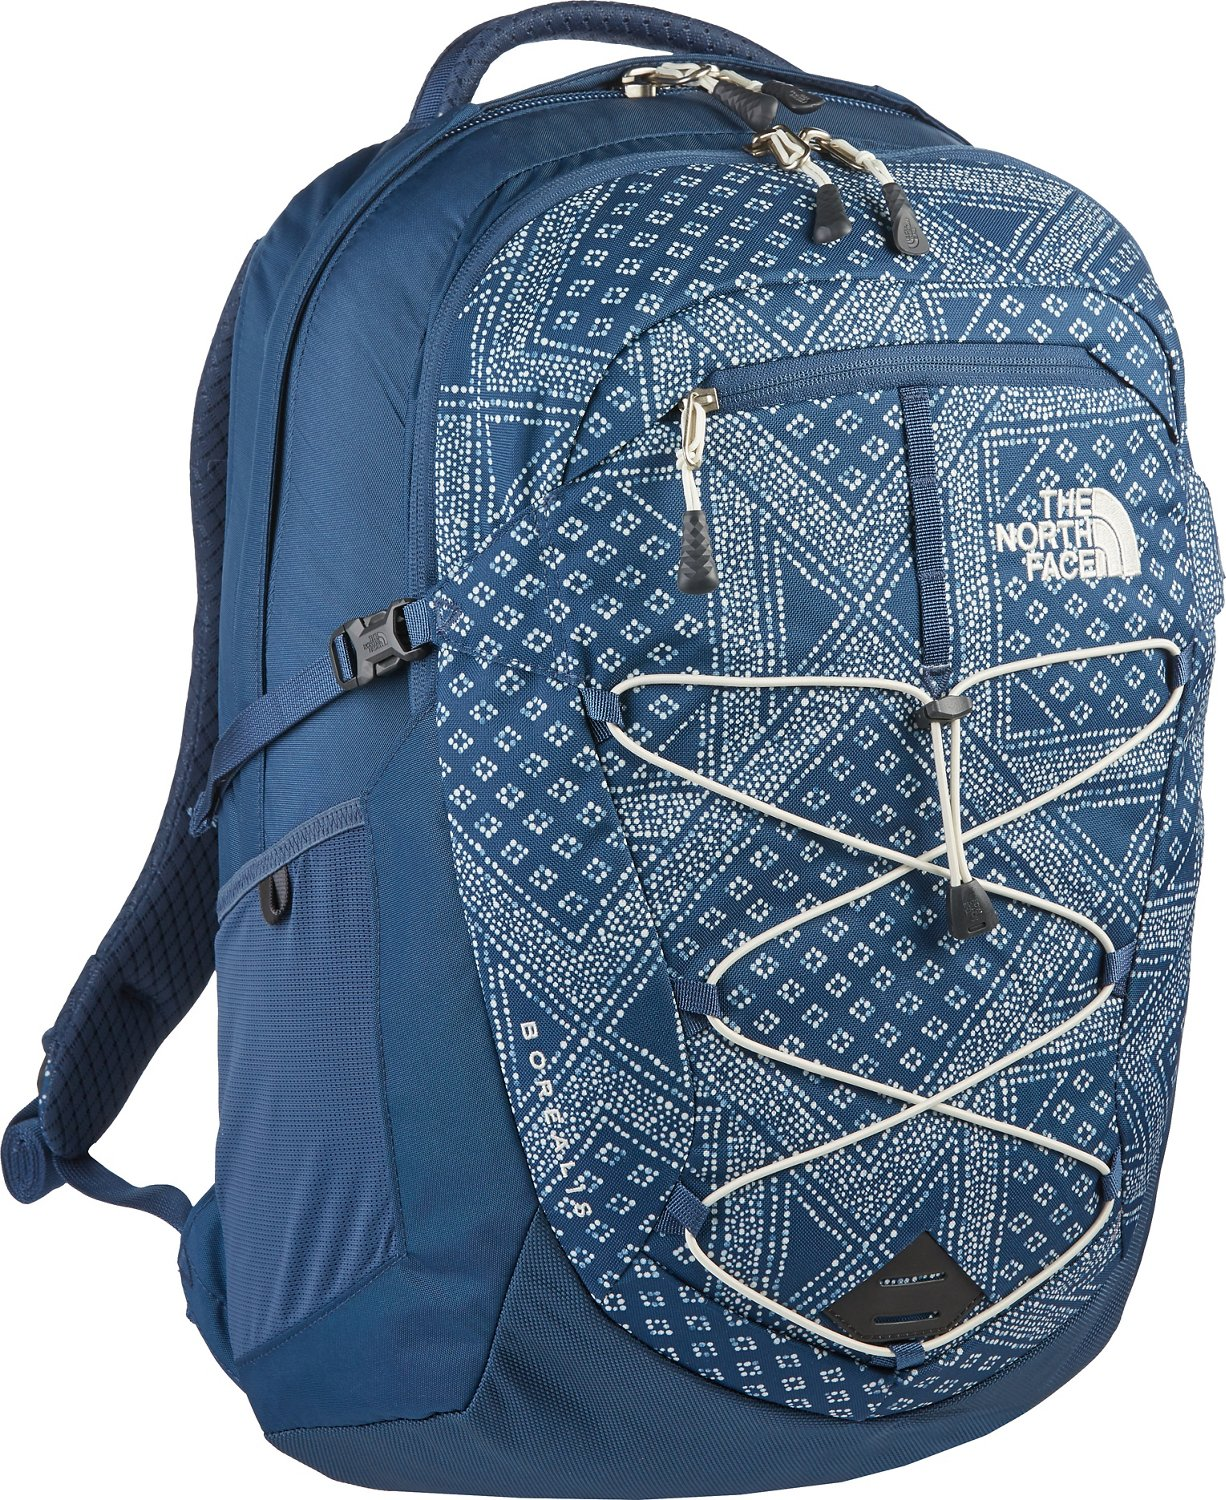 Display product reviews for The North Face Borealis Backpack